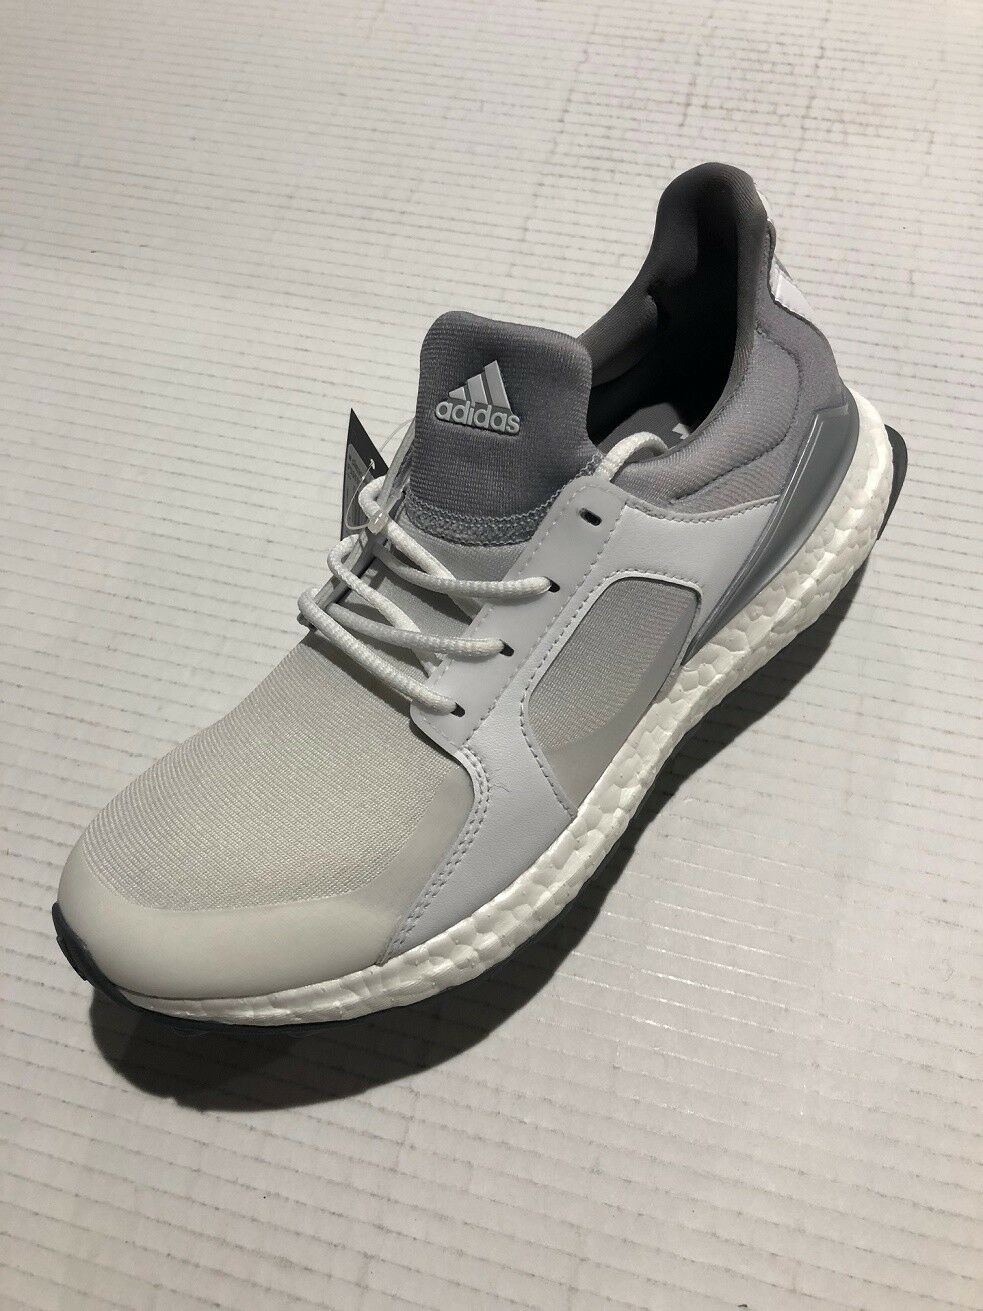 Adidas climacross boost, femmes EU 40 2 3 UK 7-nouveau directly from the pro-shop